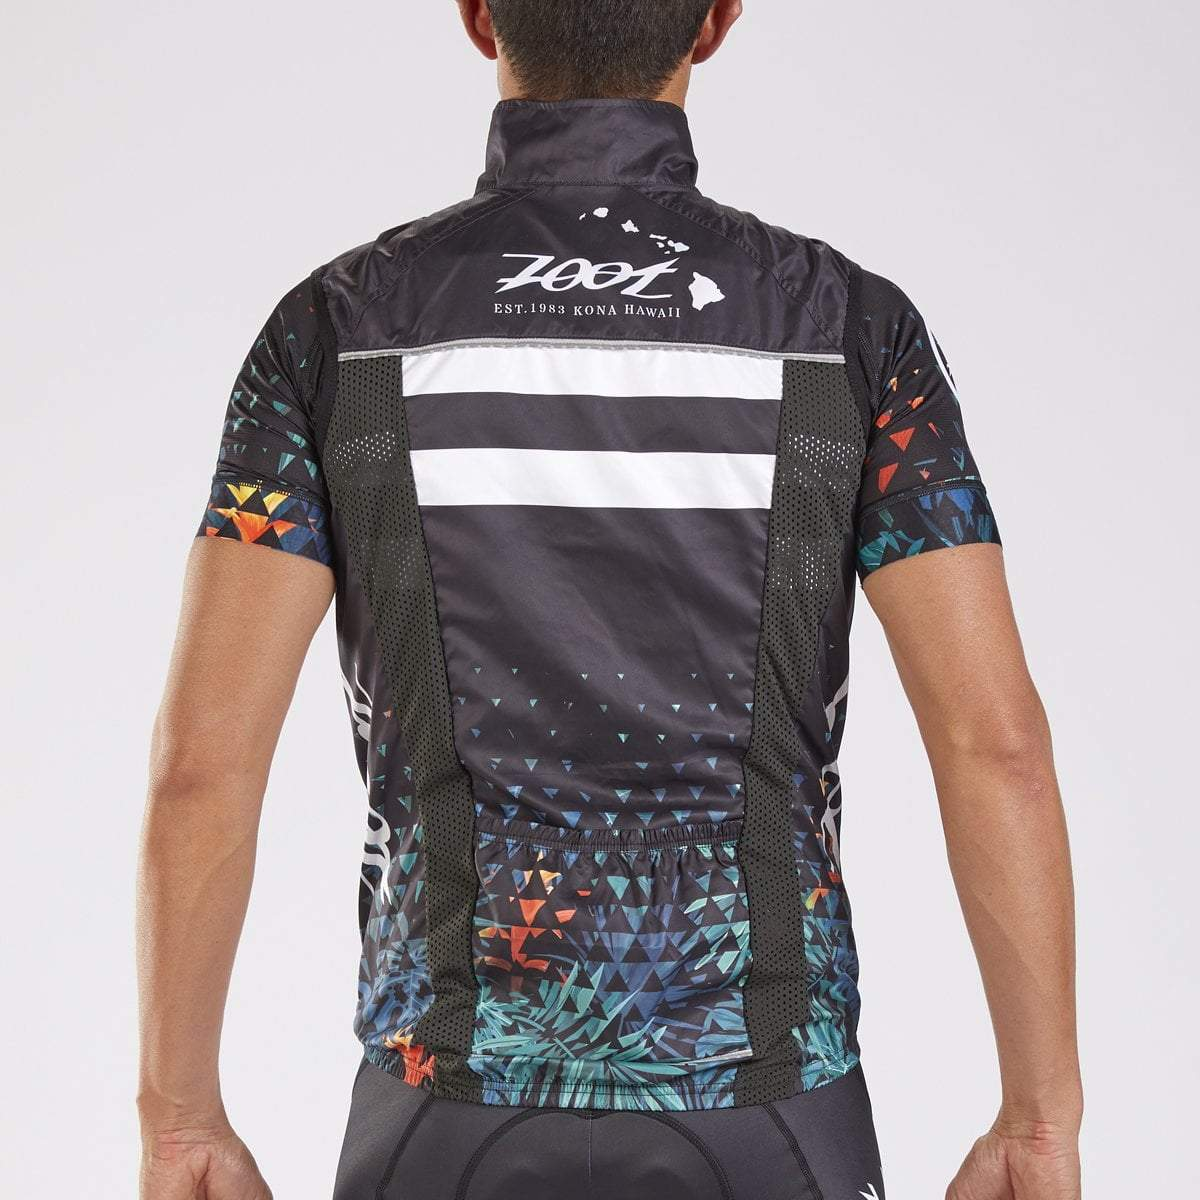 GILET CICLISMO ZOOT MEN'S LTD CYCLE WIND VEST ALI'I 2018 BACK.jpg